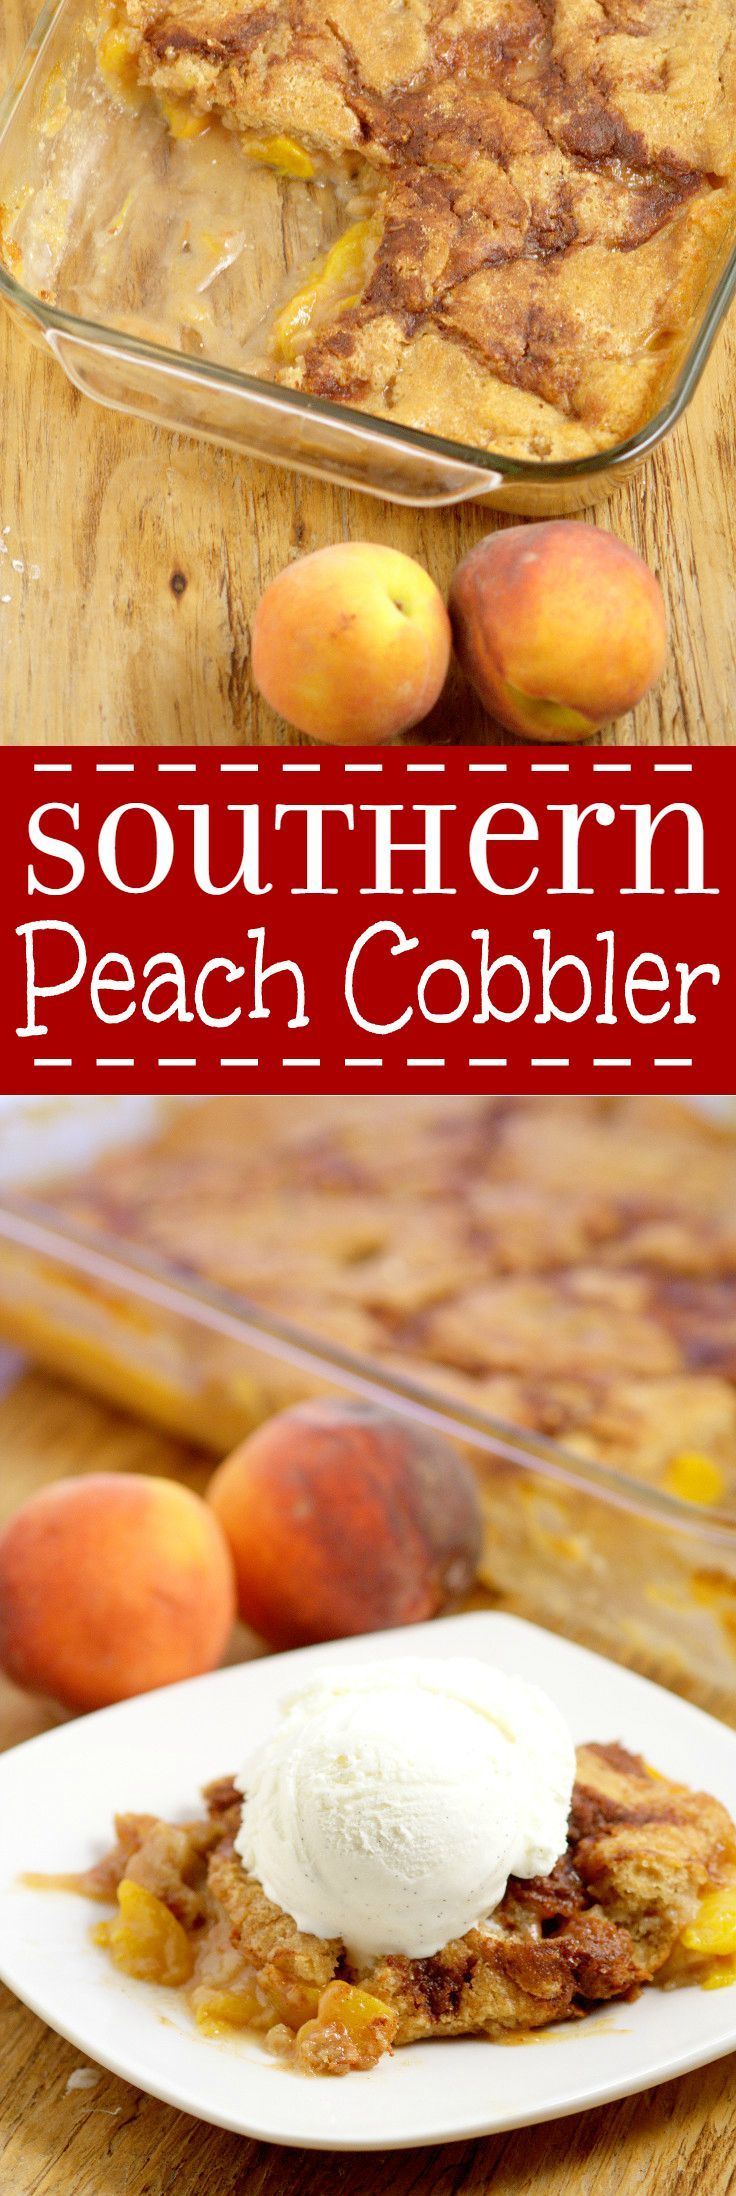 Southern Peach Cobbler Recipe  - an easy, yummy dessert recipe.  Fresh or canned sweet peaches covered  covered in butter, brown sugar and spices and topped with a simple moist cobbler batter and cinnamon sugar topping. Great for parties and holidays!   This is so delicious with ice cream on top.  It adds just the right amount of creamy. | https://lomejordelaweb.es/